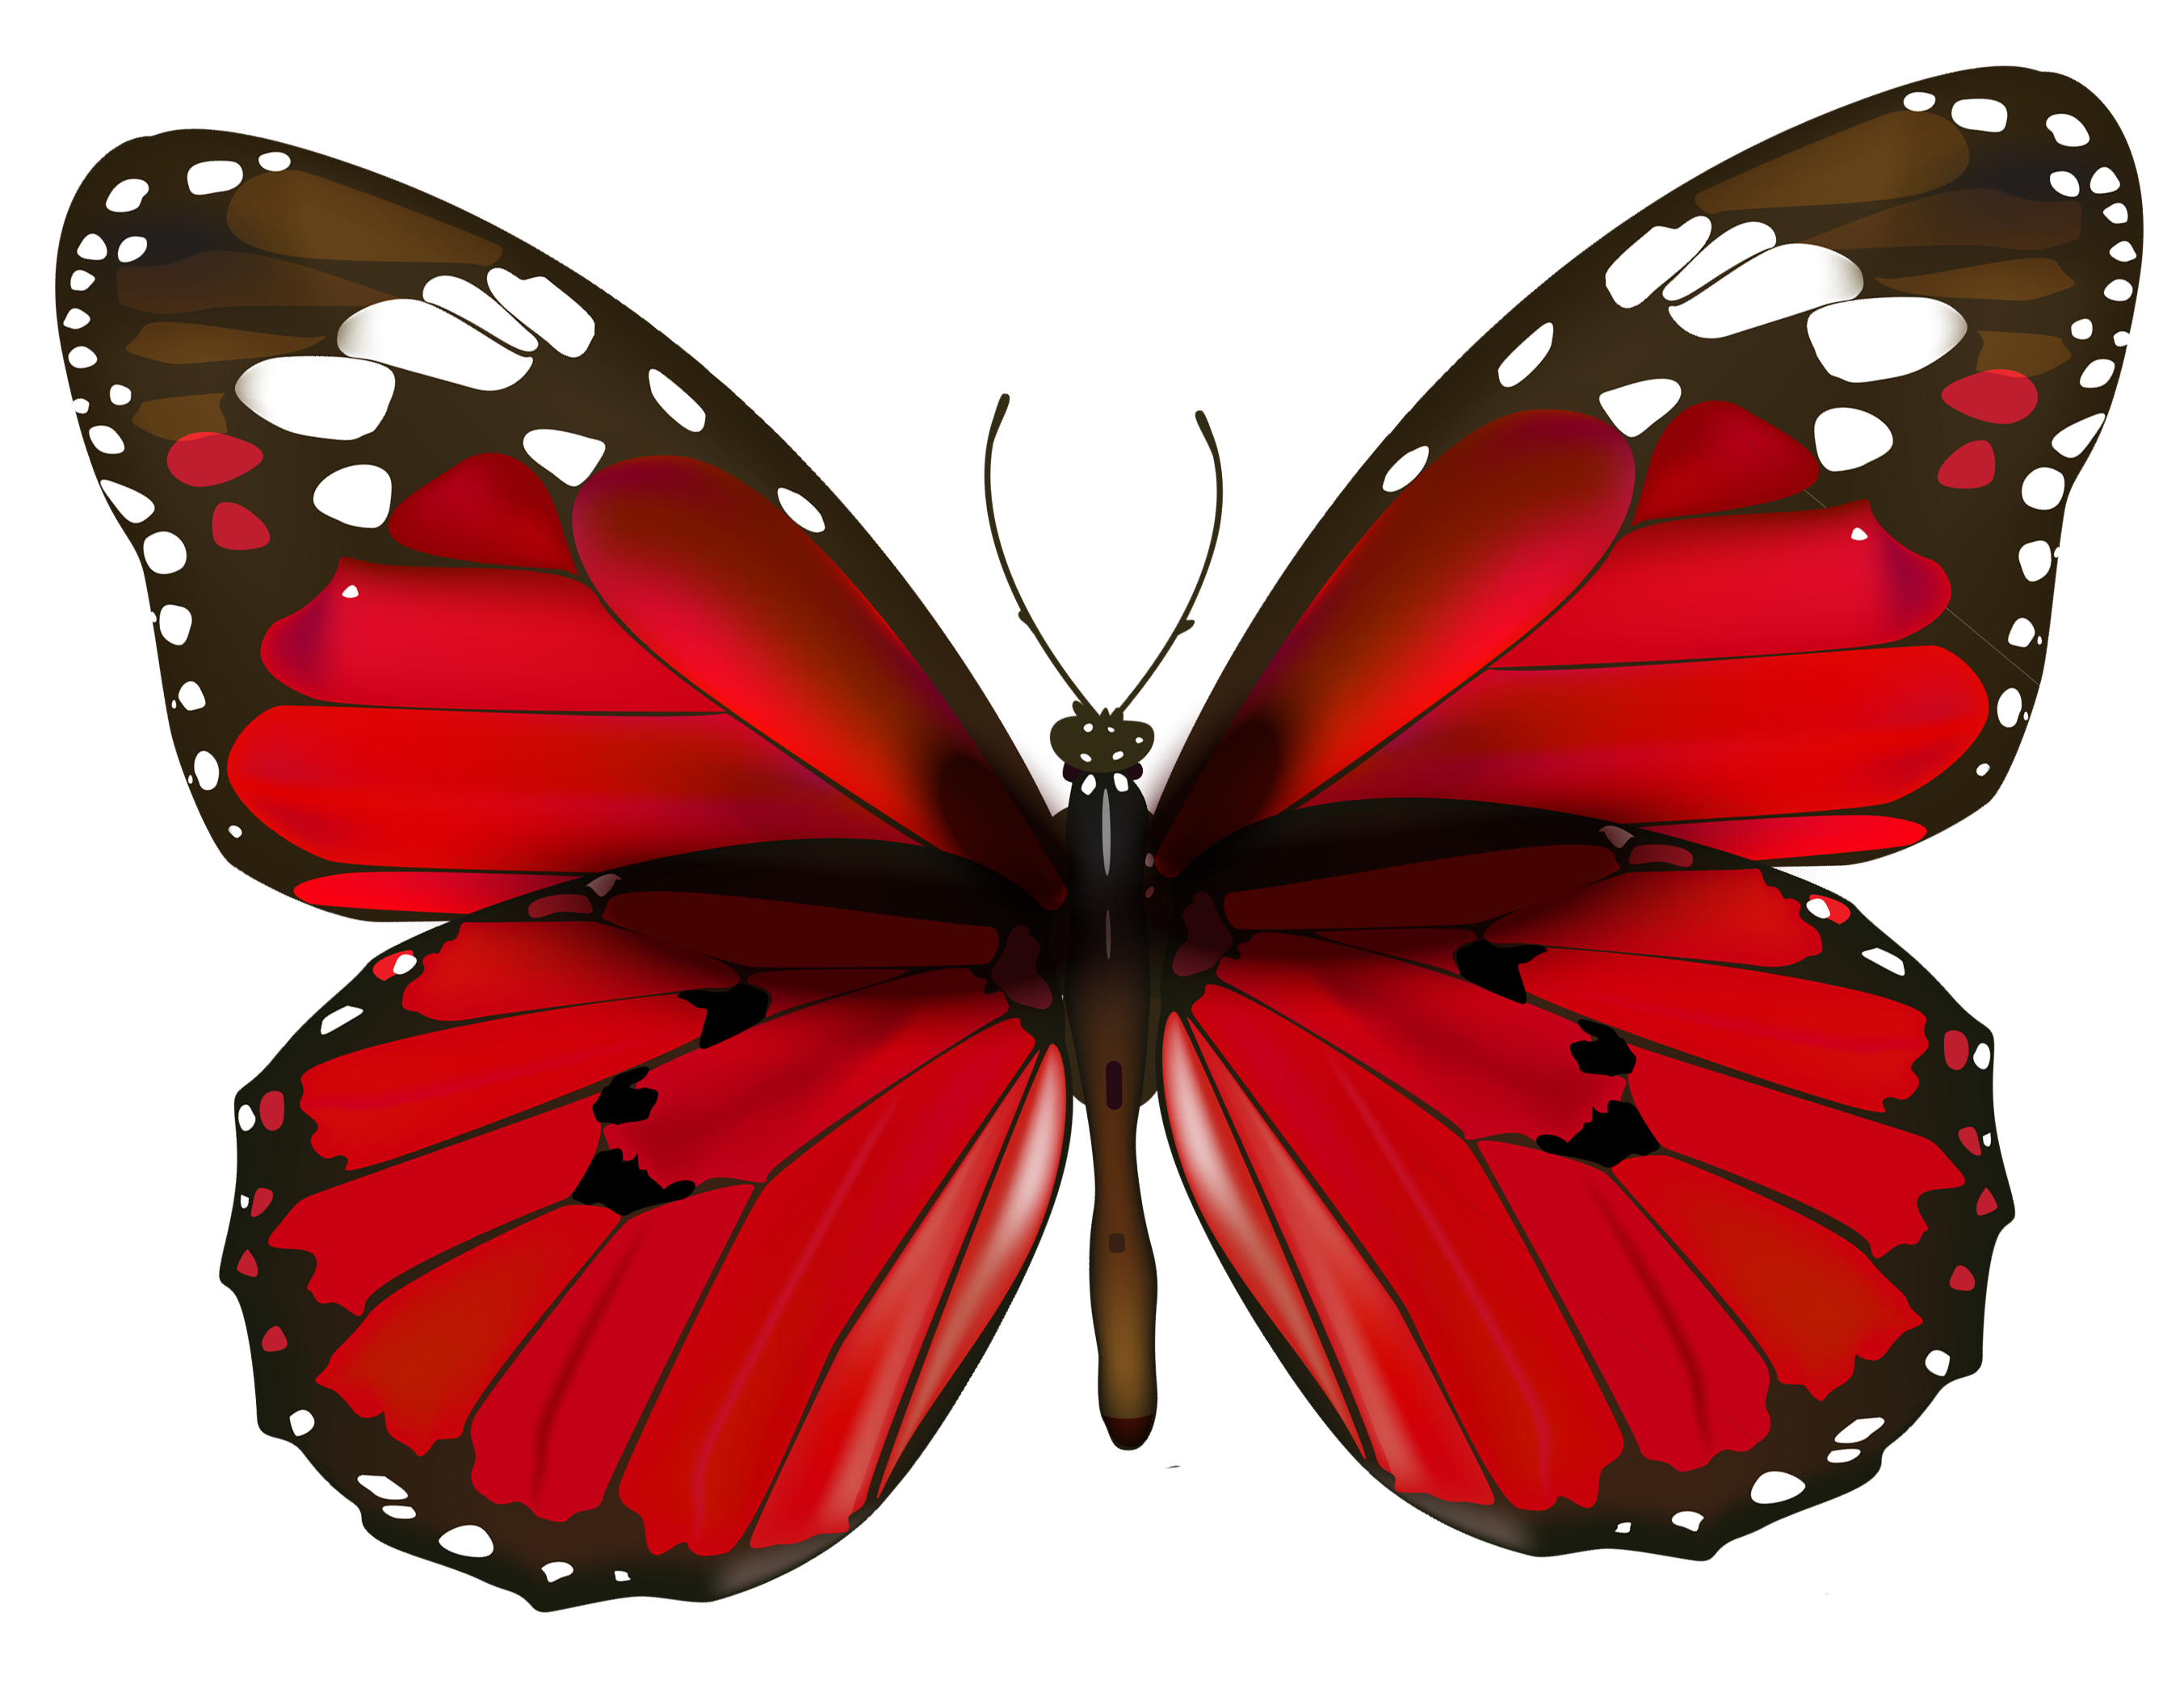 Free butterfly clipart png graphic black and white stock Red Butterfly PNG Clipart graphic black and white stock